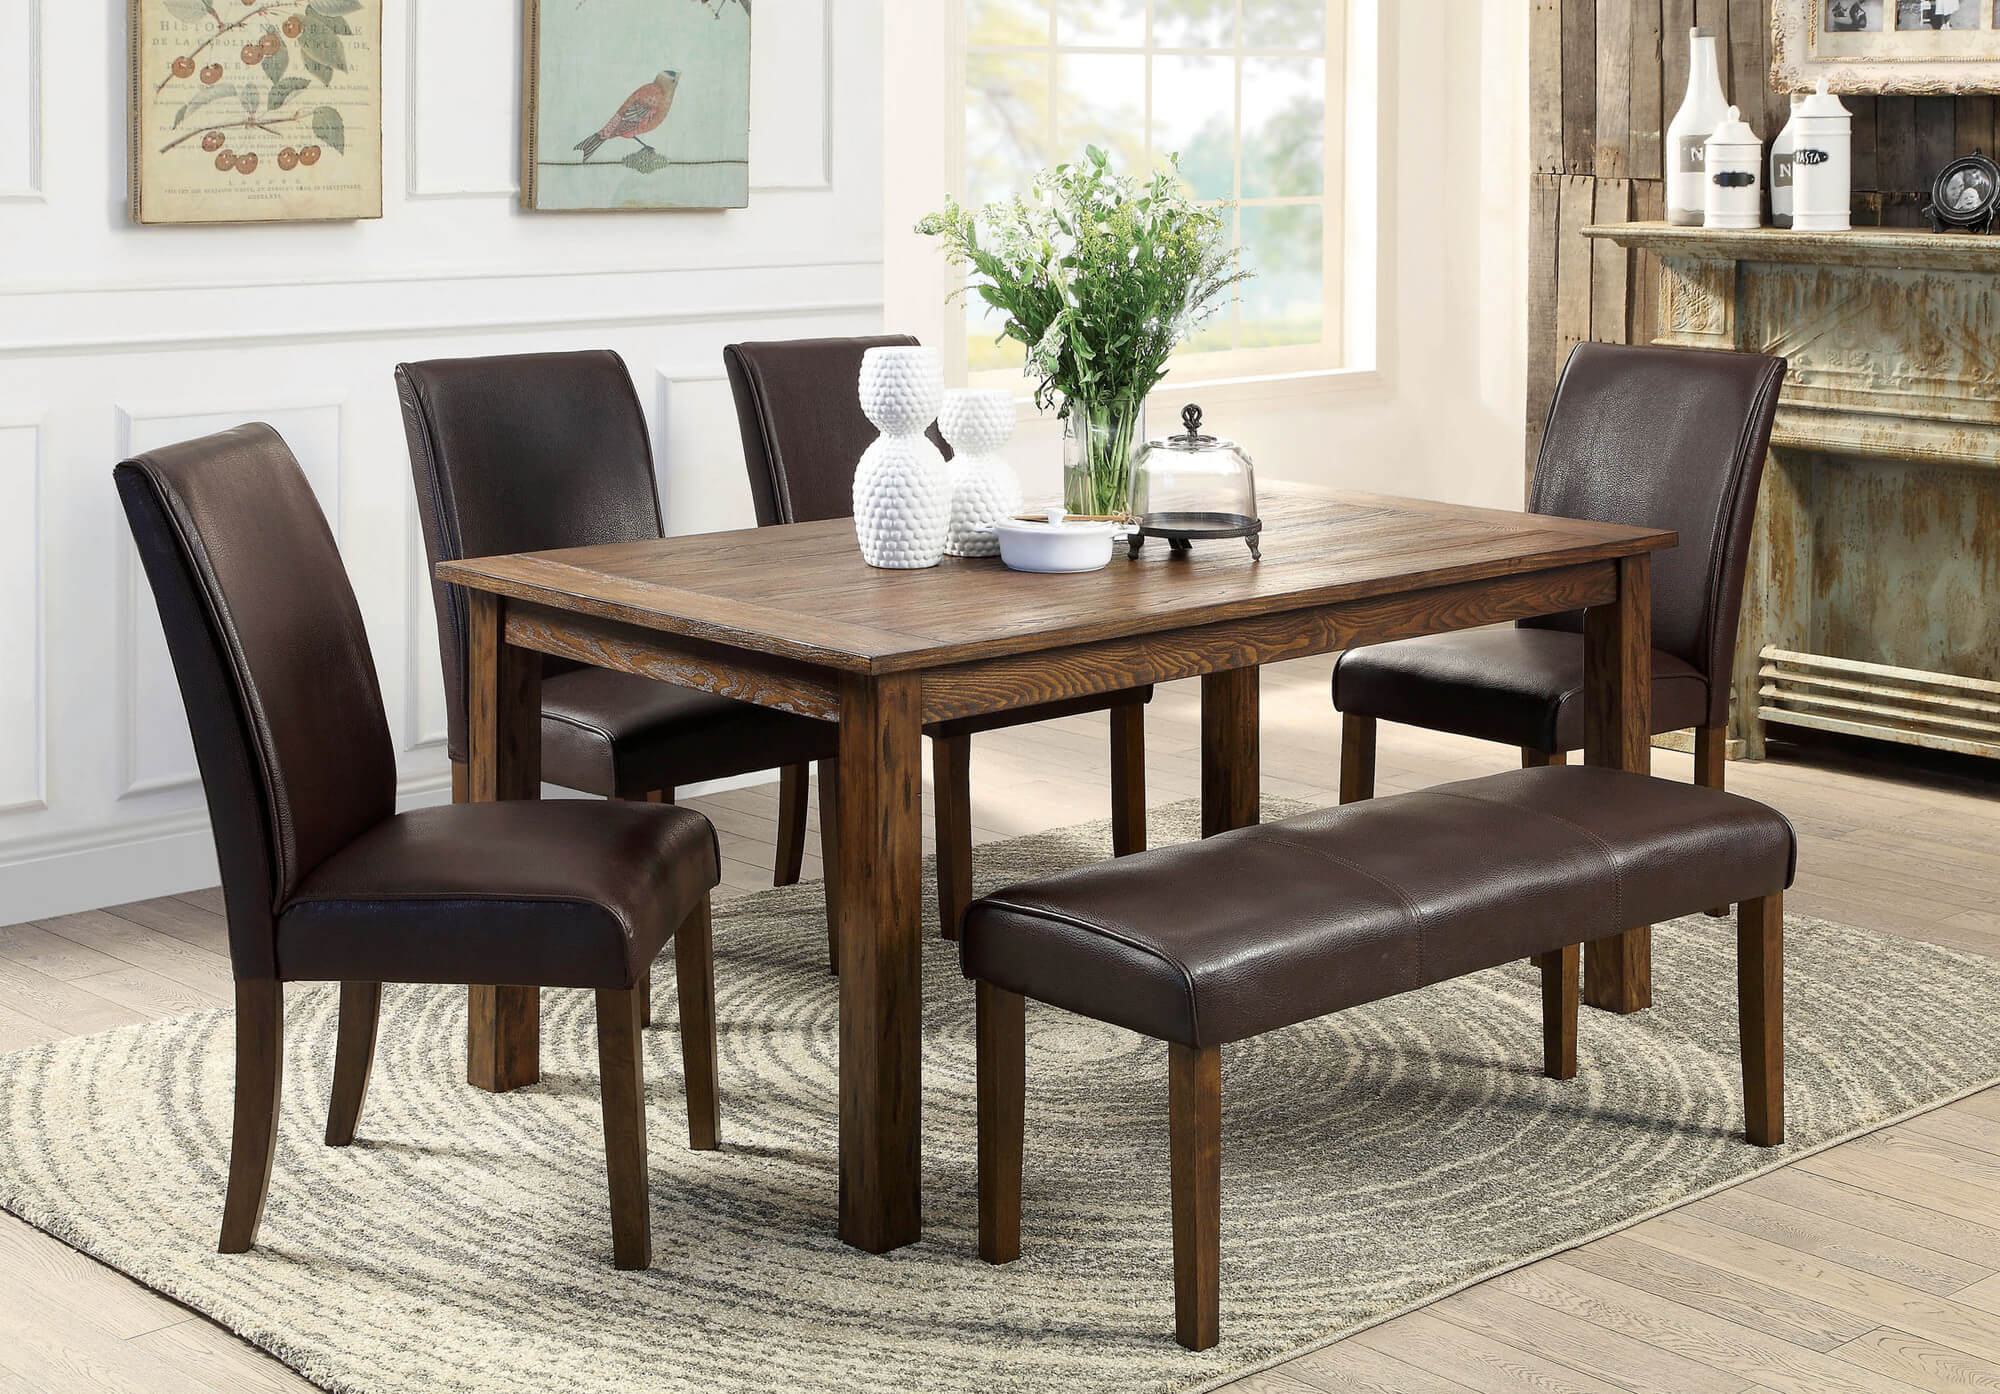 dining table with sofa chairs. best 25 couch dining table ideas on